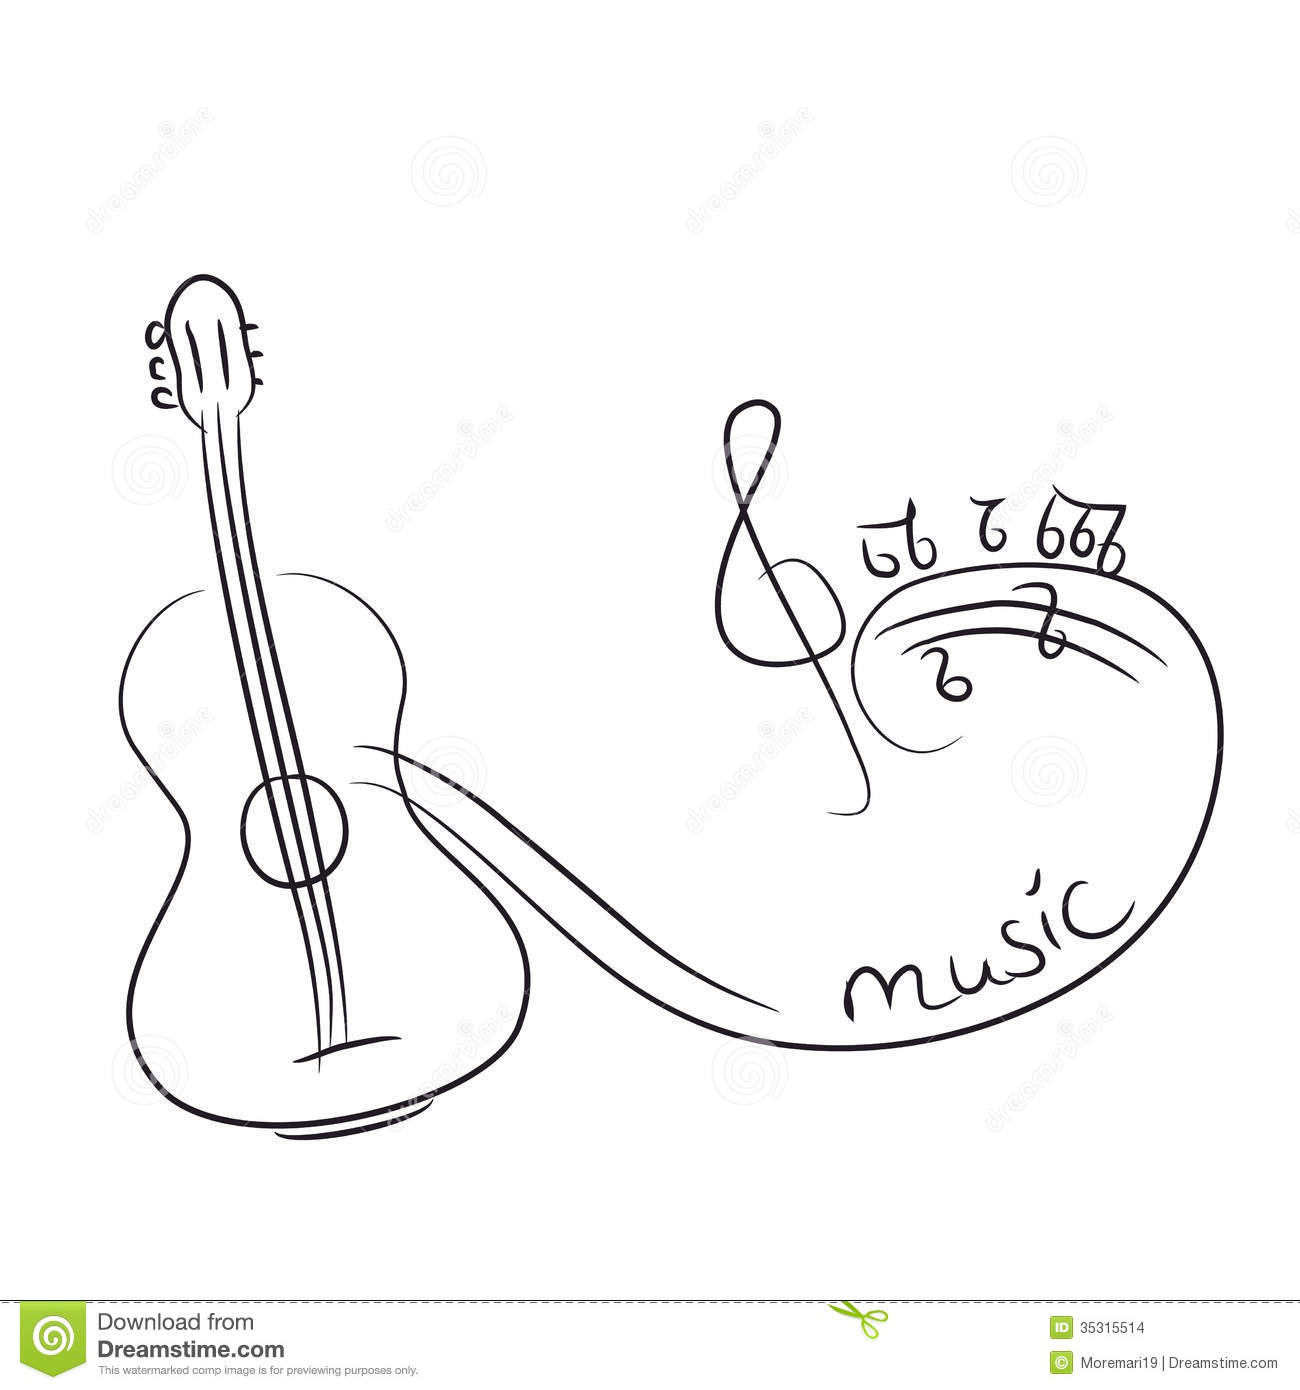 Sketch Of A Guitar With Notes Stock Vector